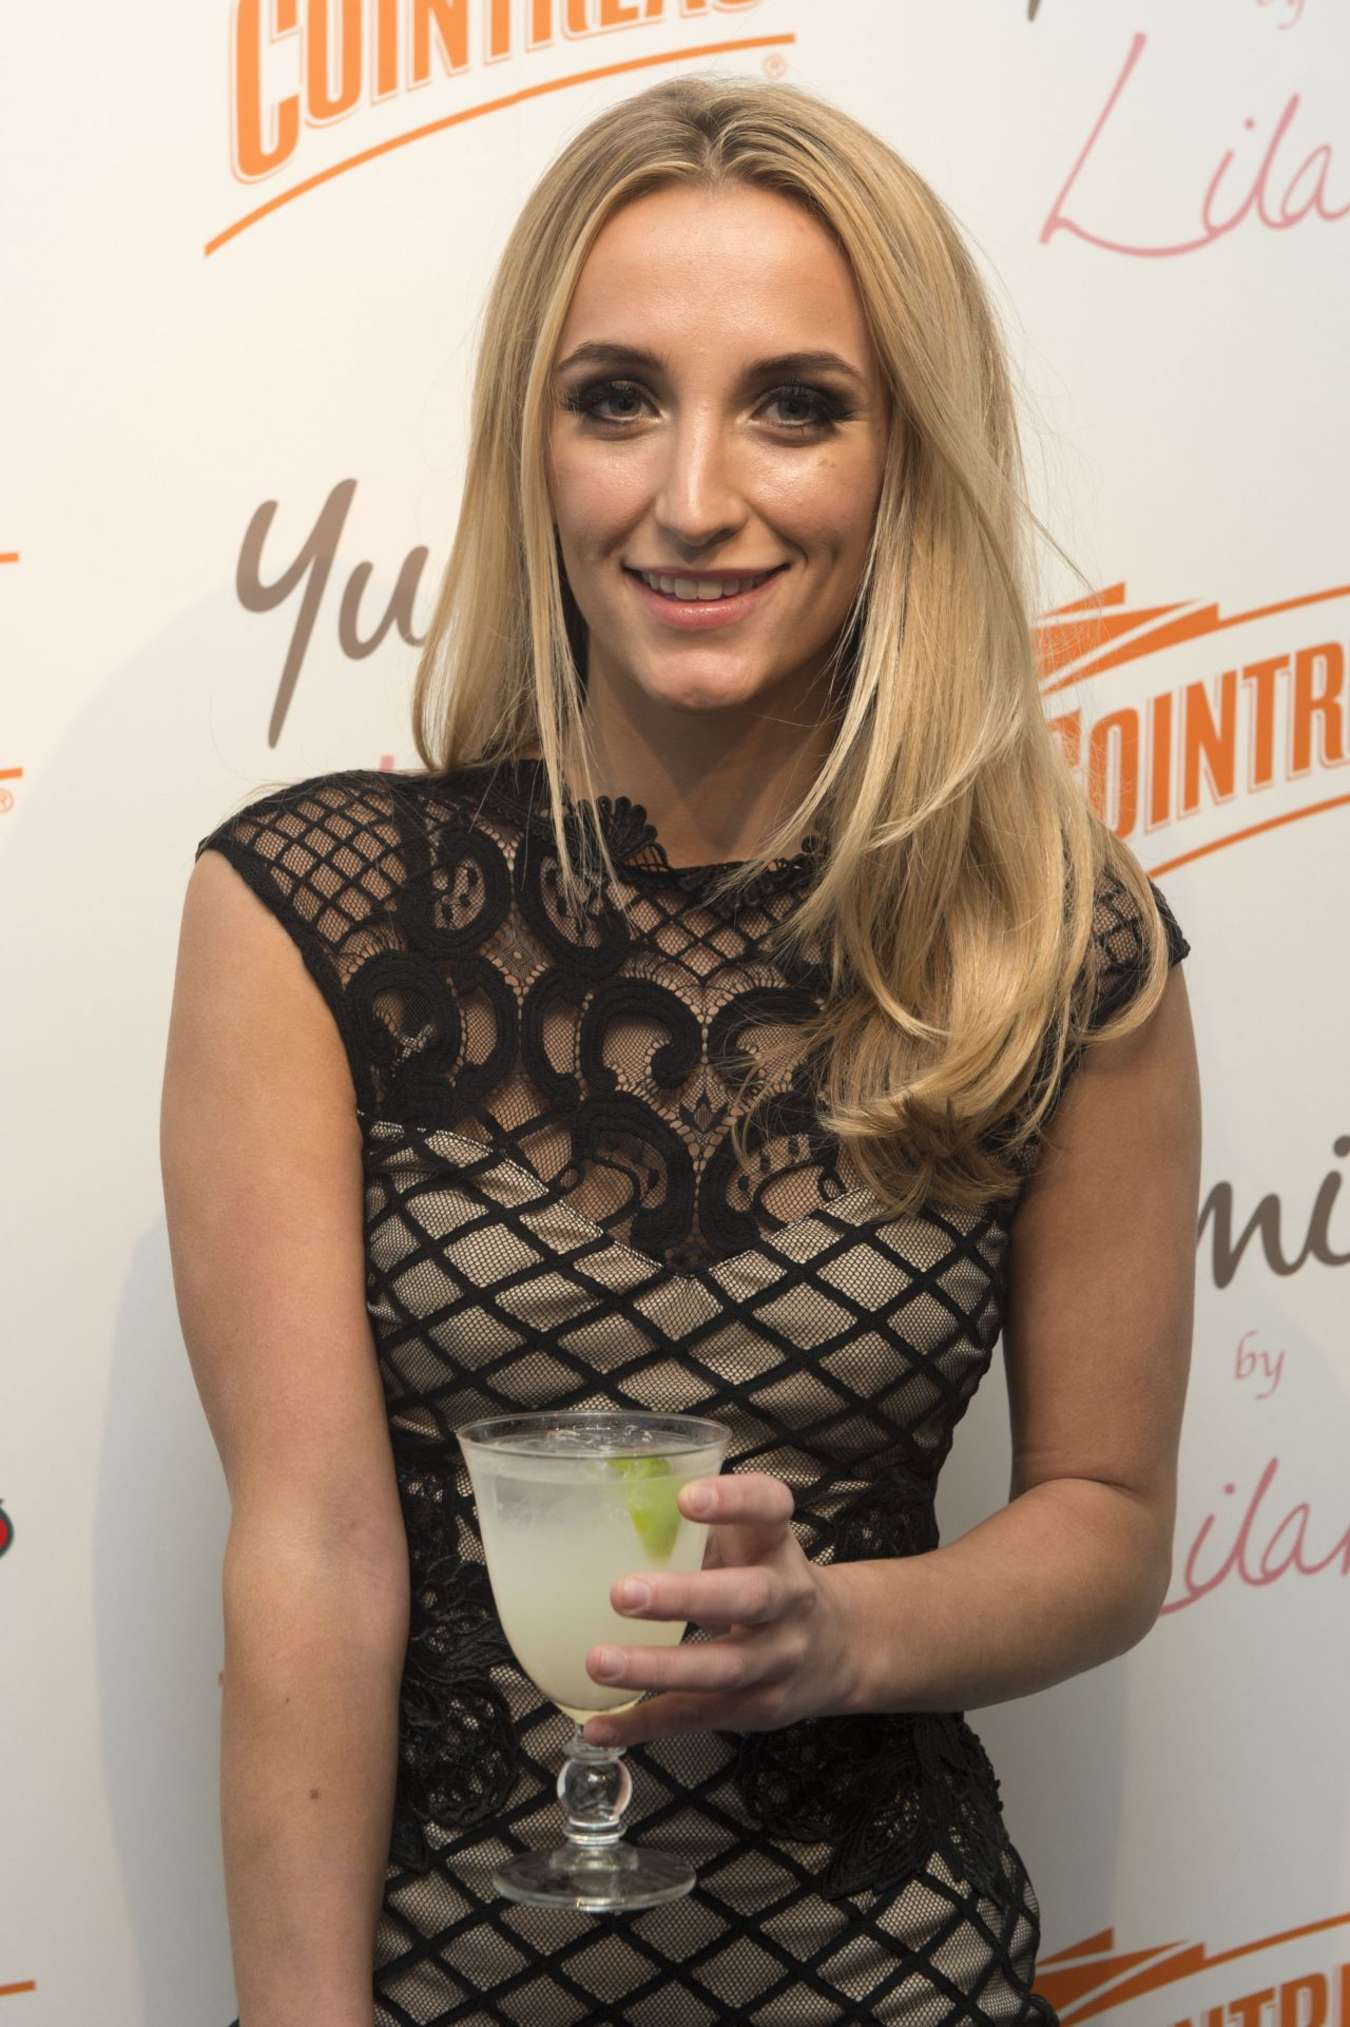 Tiffany Watson Cointreau Launch Party for Yumi By Lilah Collection in London